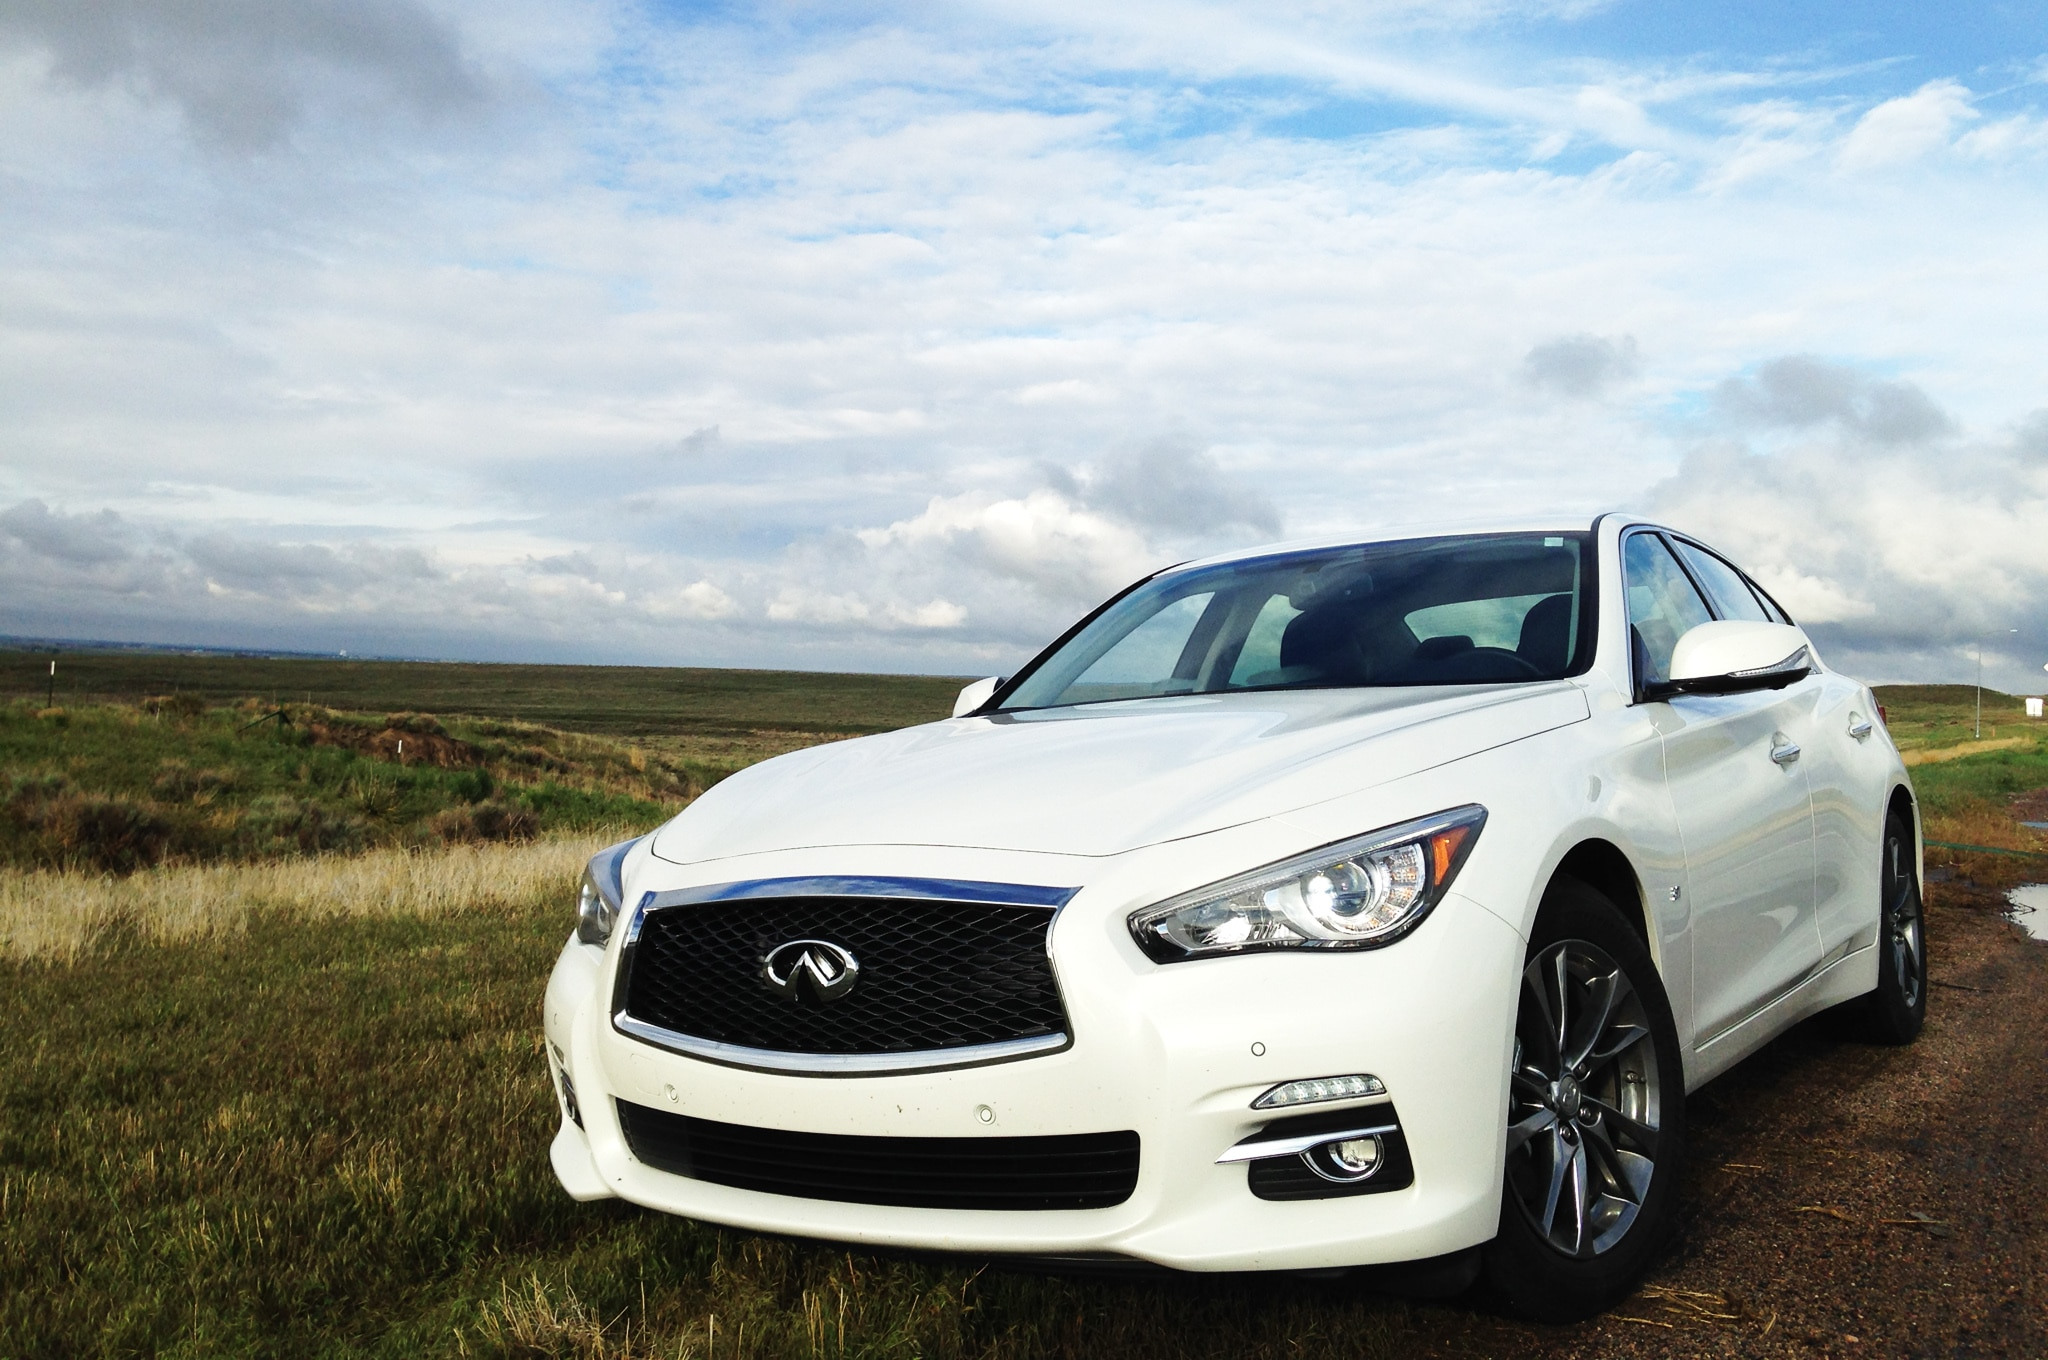 2014 Infiniti Q50 Four Seasons Vegas Trip 12 Front Three Quarter